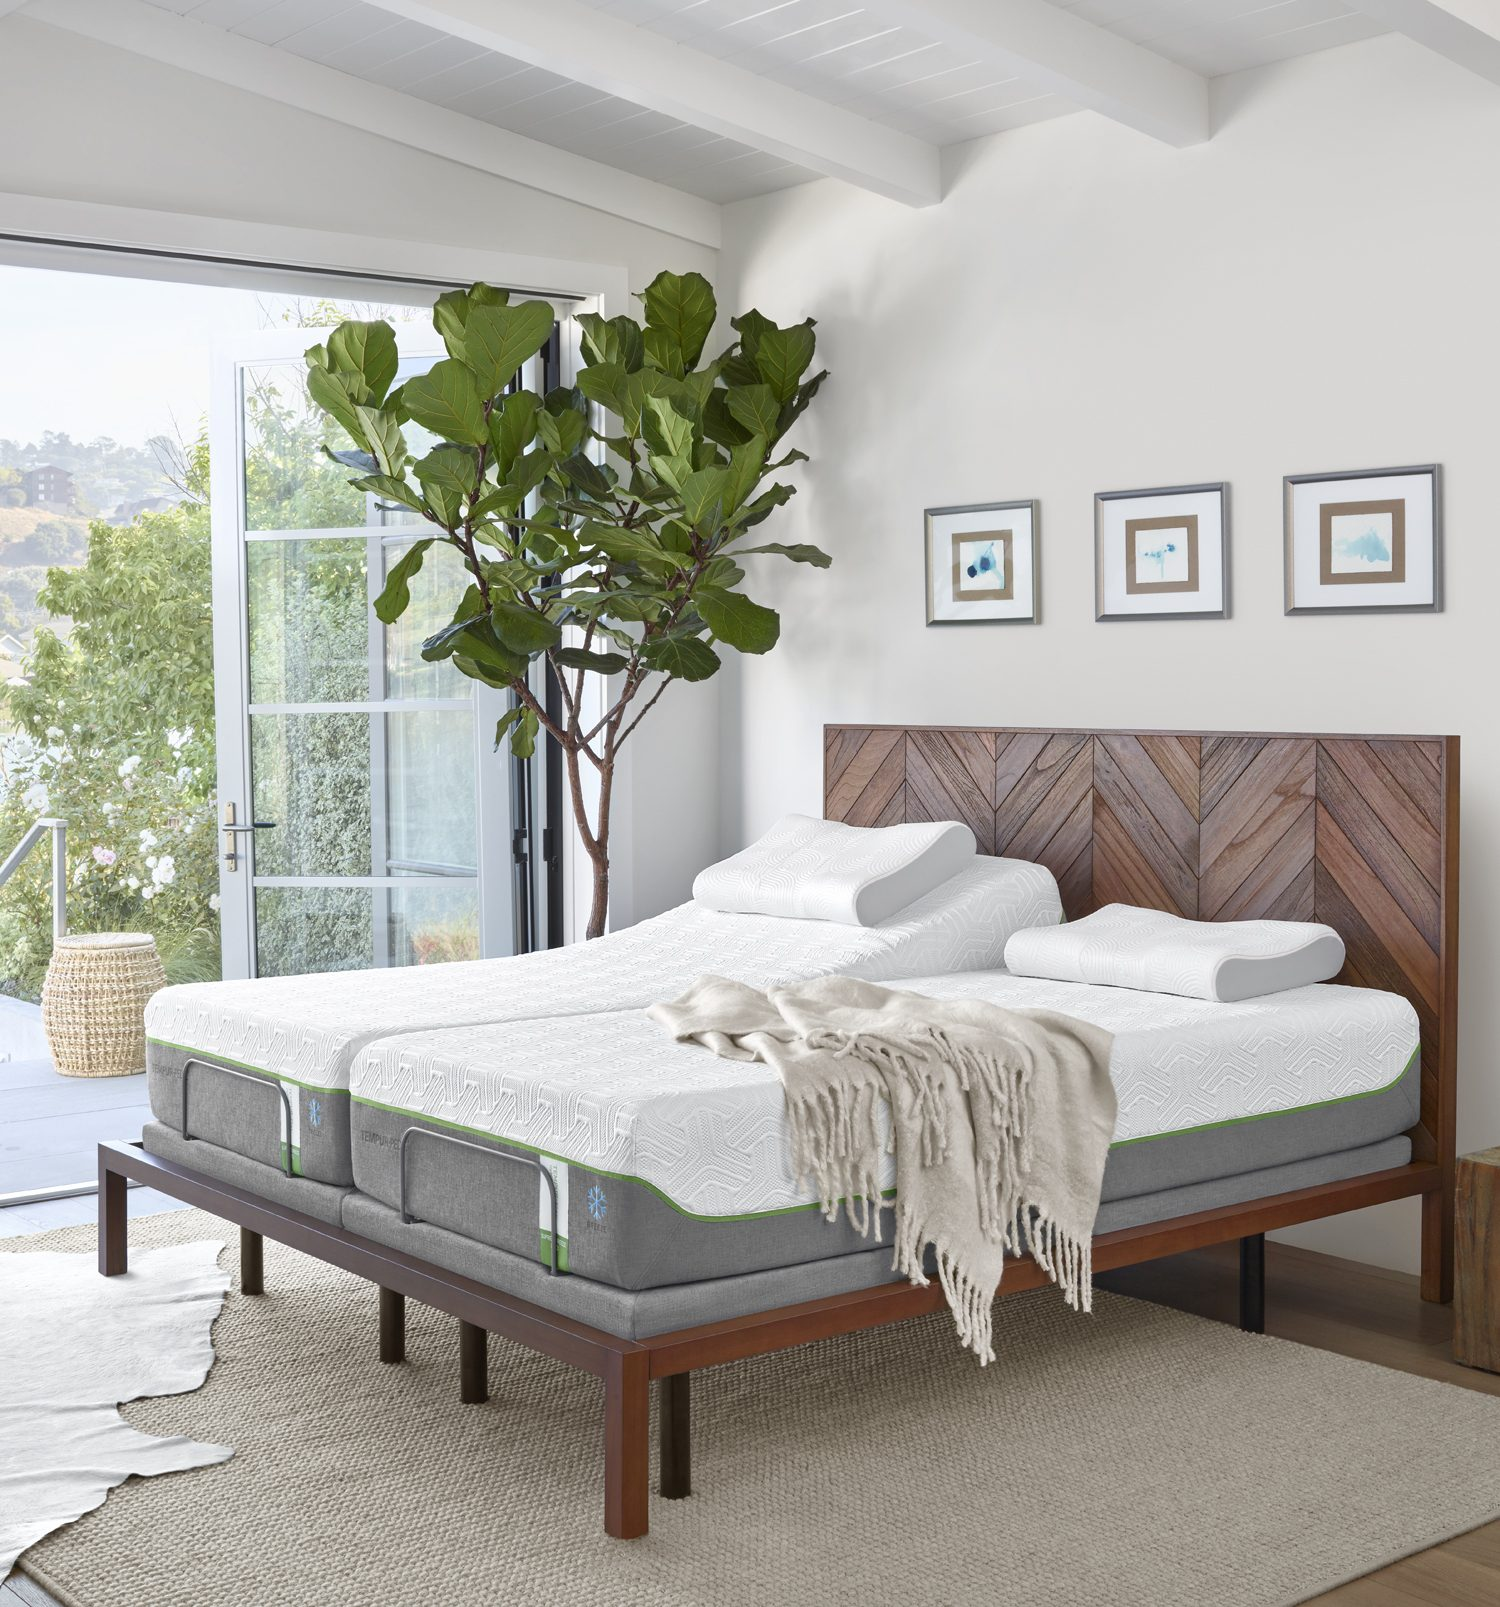 Can I Use Foam Mattress On Ashley Furniture Bed